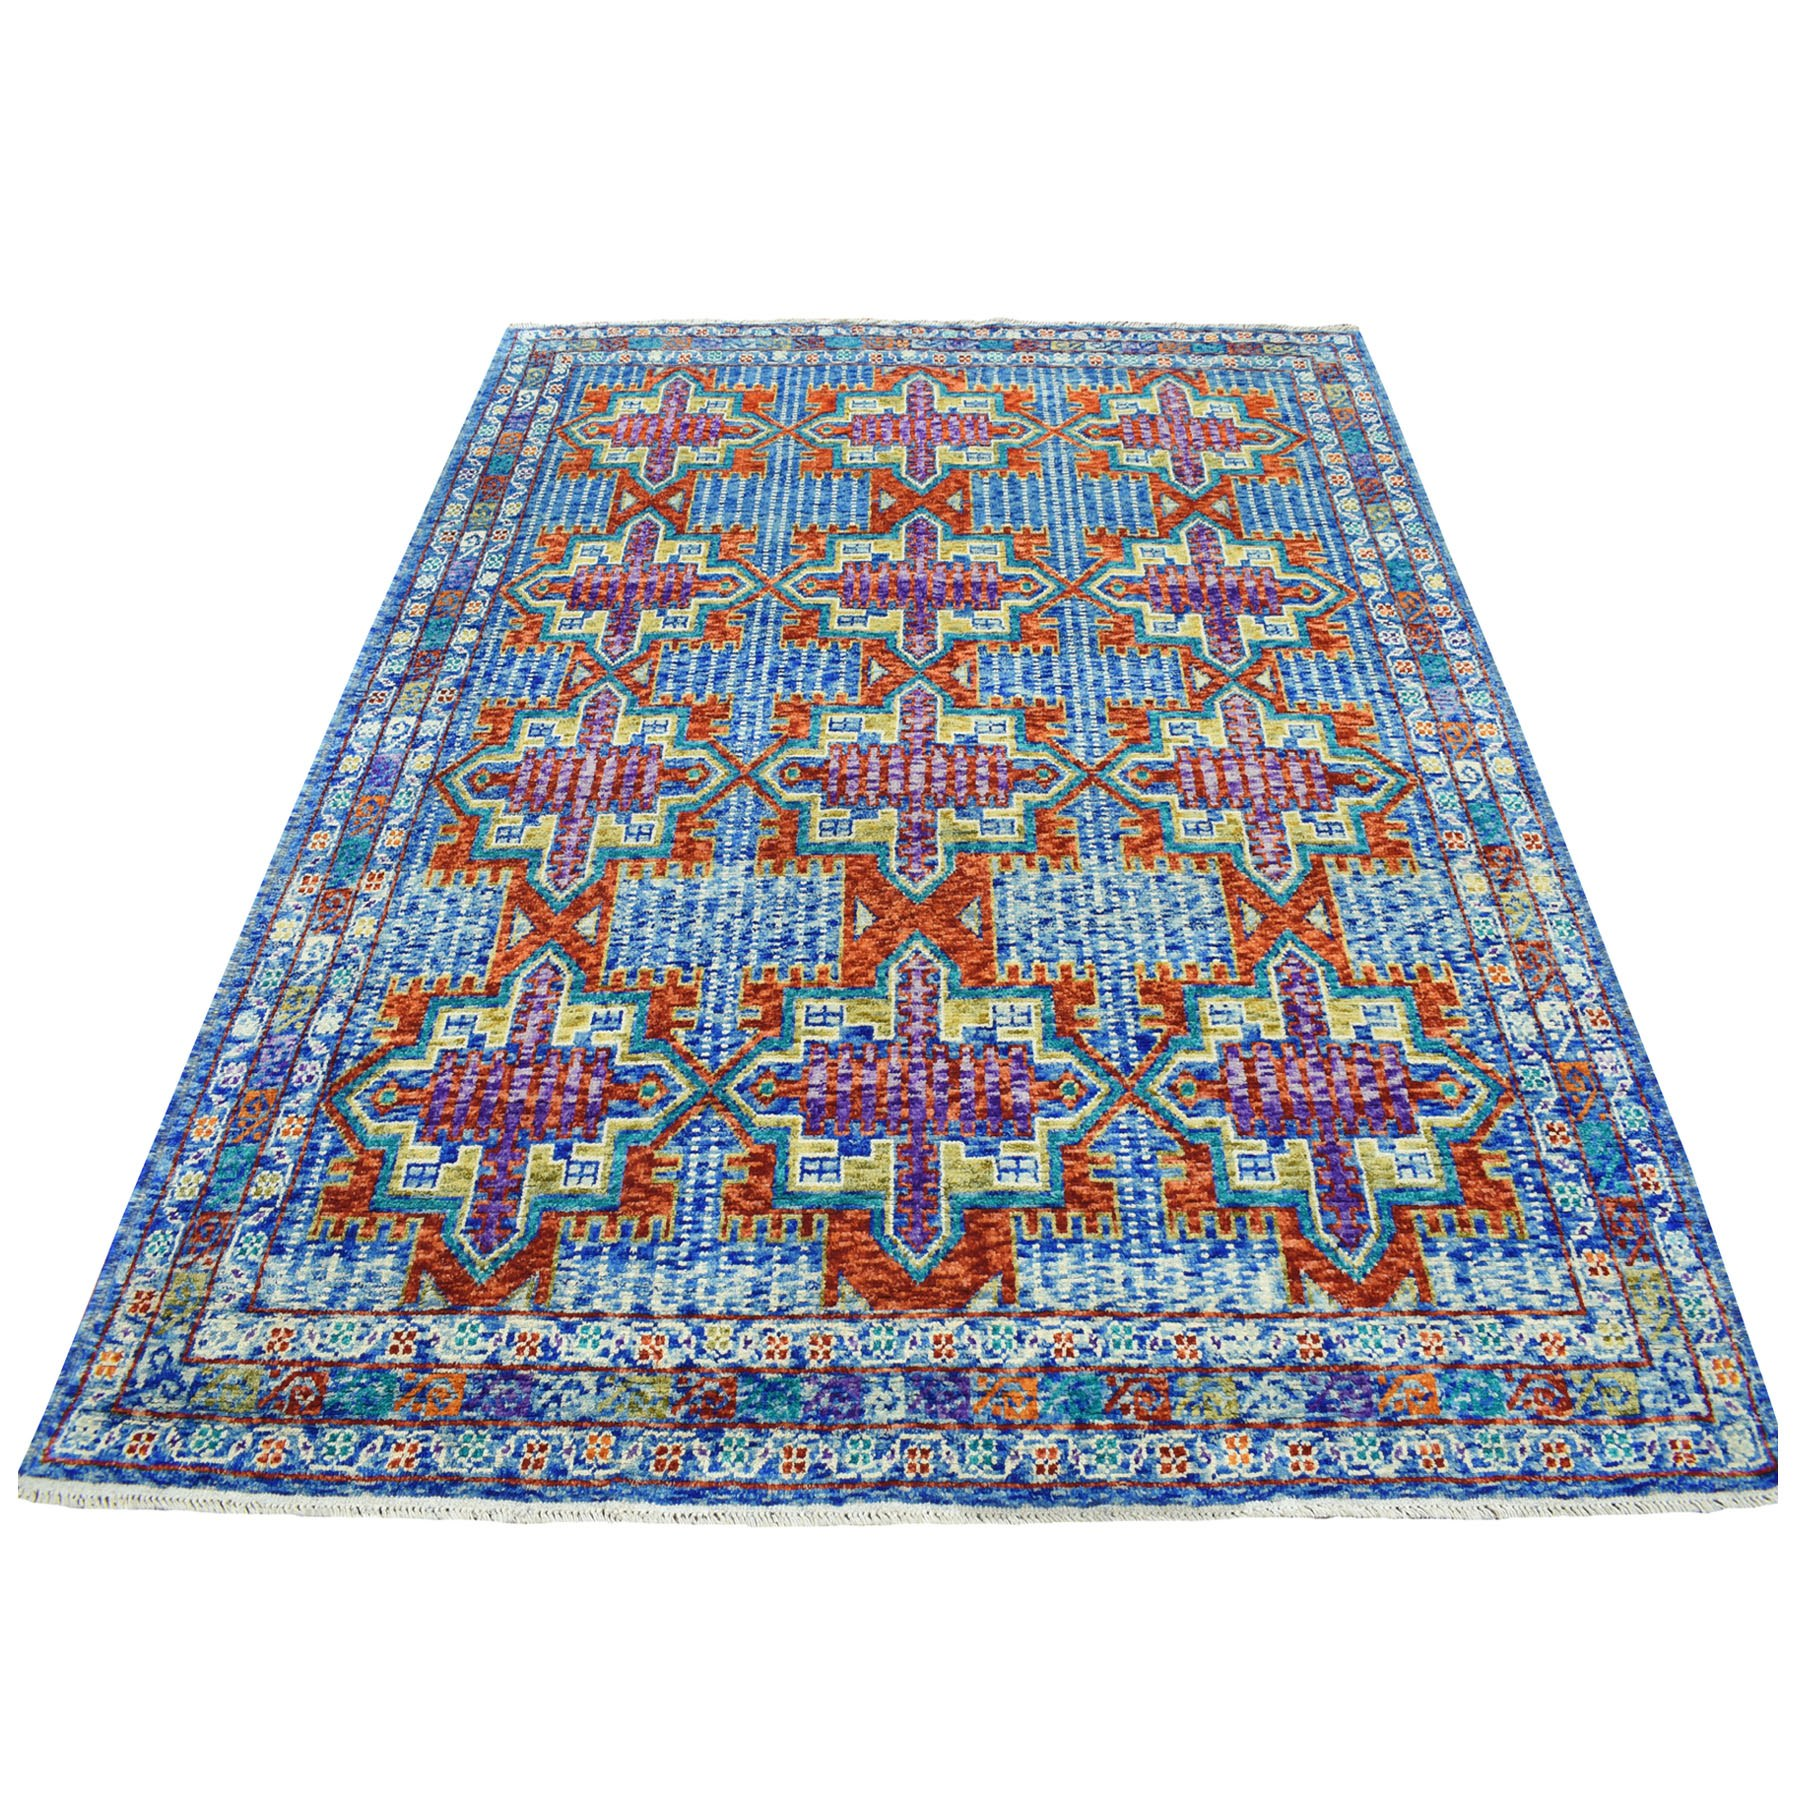 "6'1""x8'1"" Blue Tribal Design Colorful Afghan Baluch Hand Knotted Pure Wool Oriental Rug"